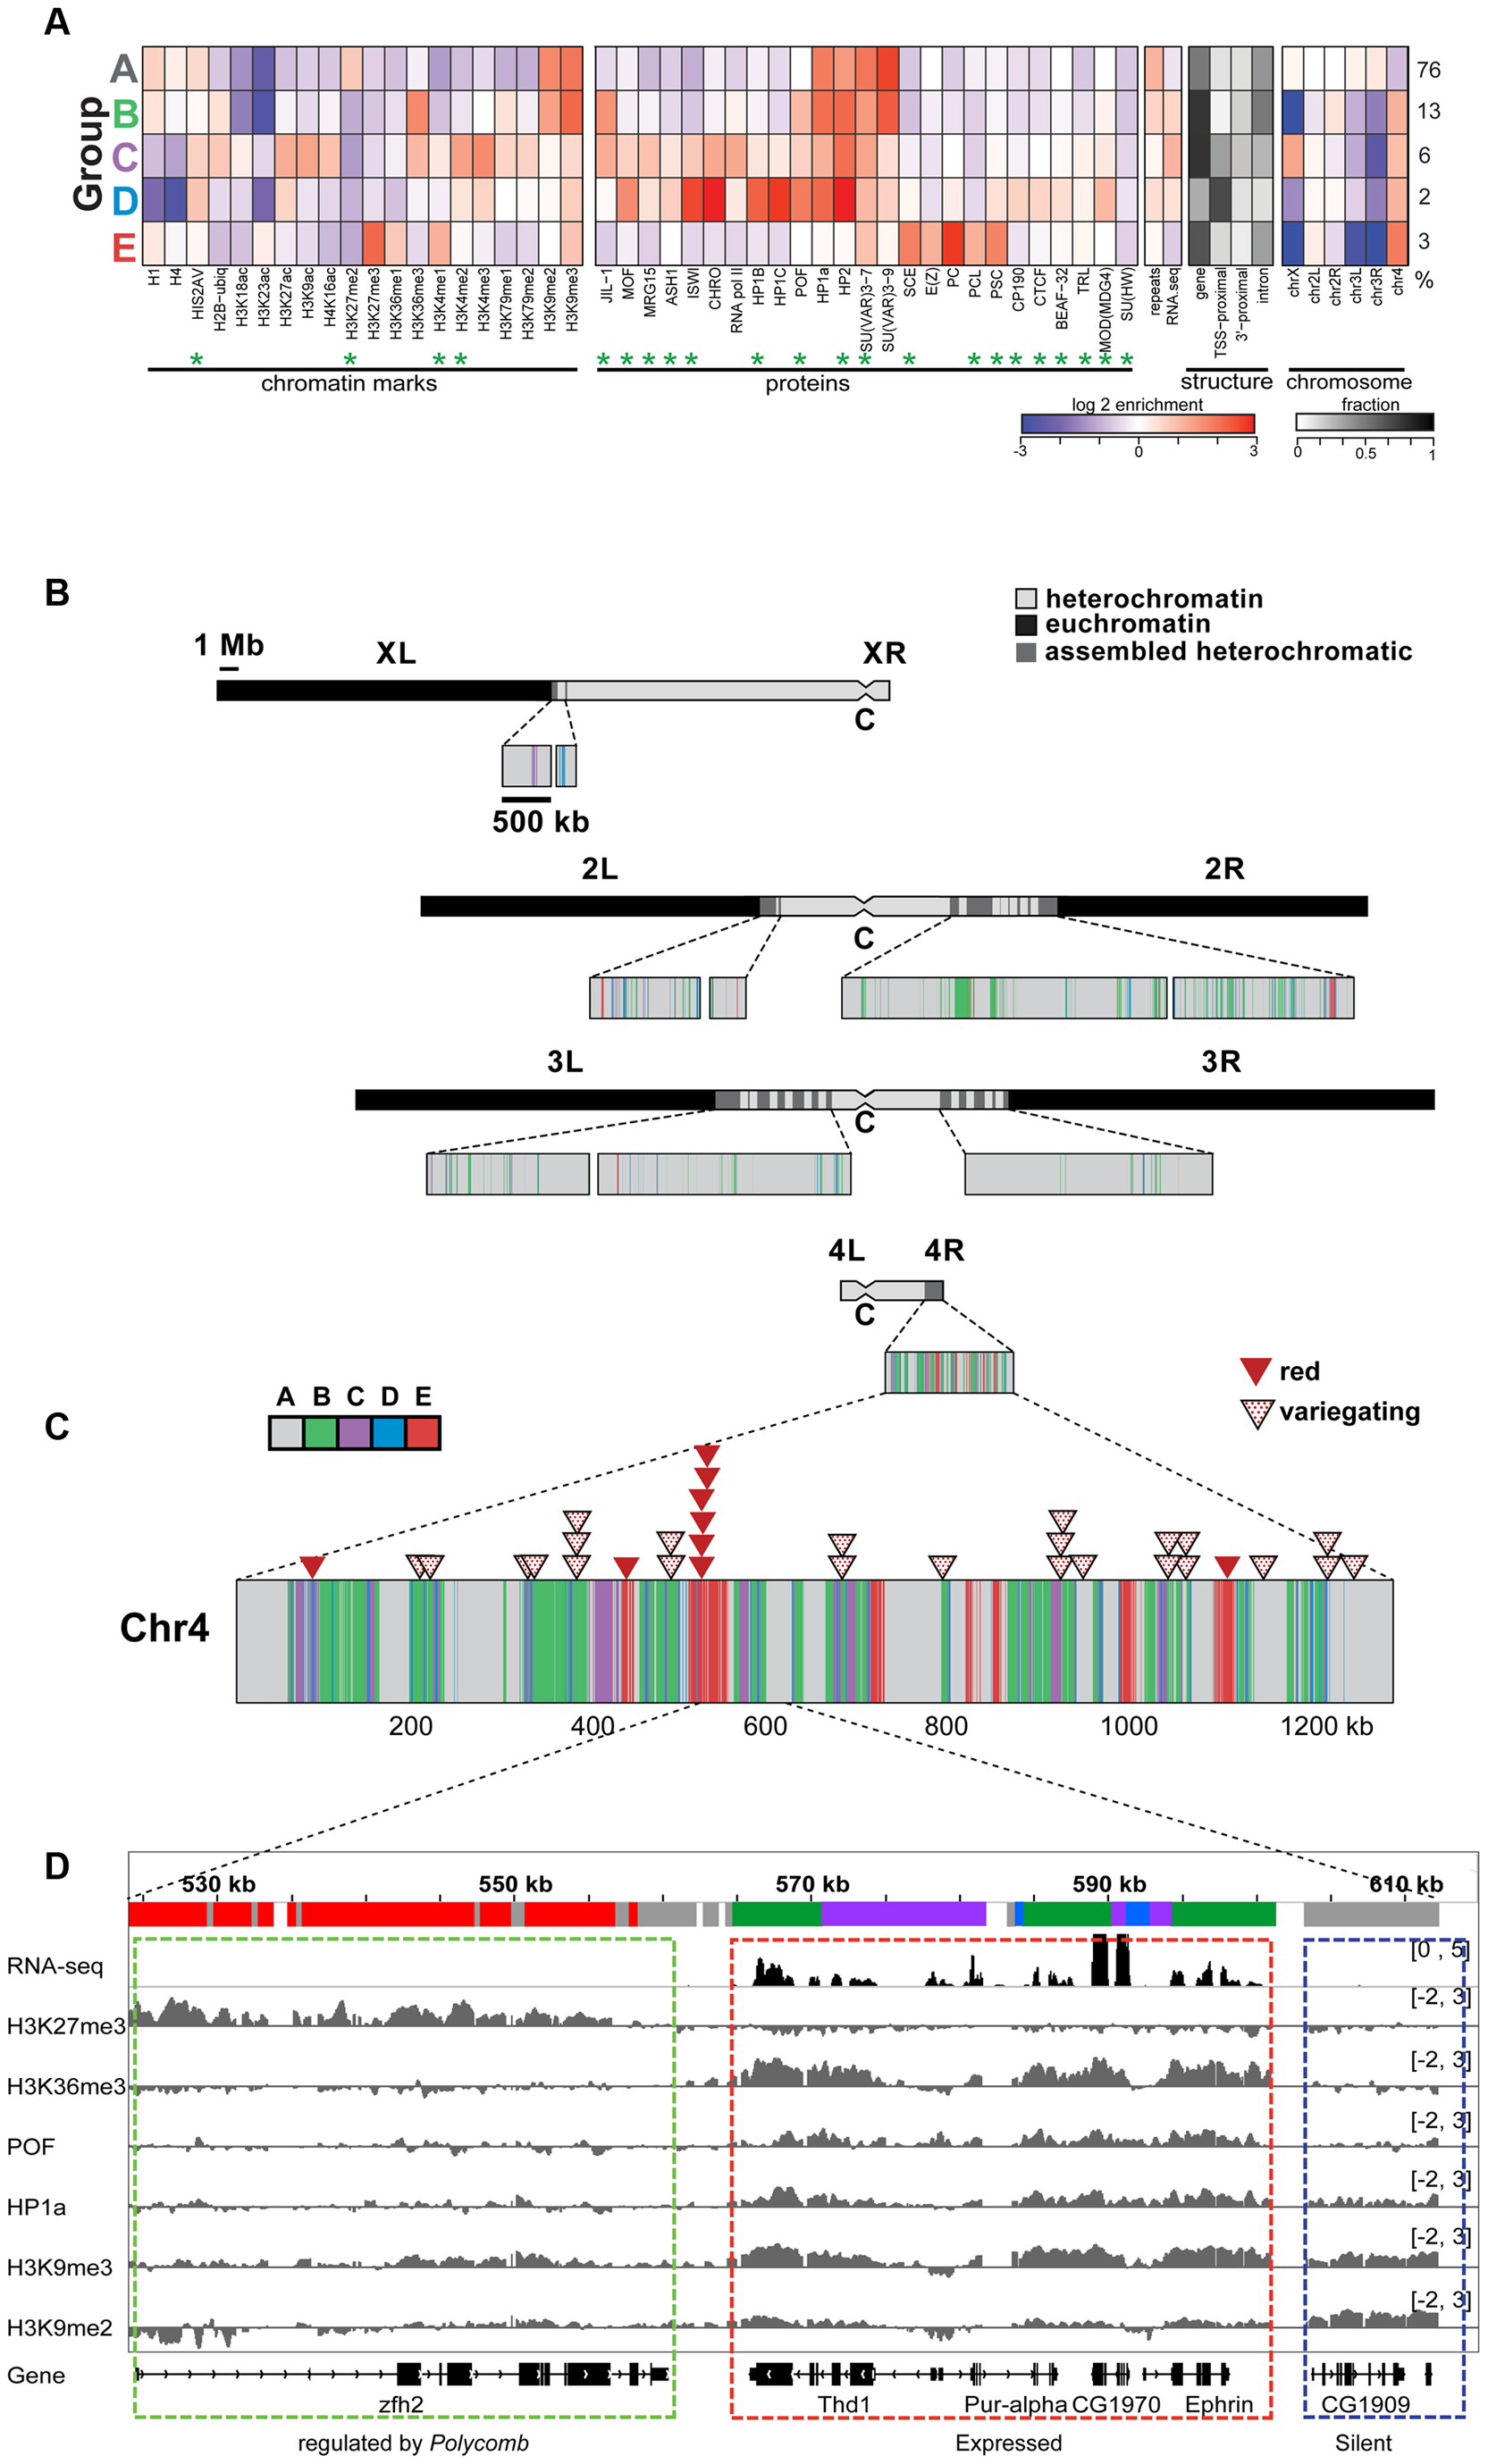 The chromatin composition of <i>D. melanogaster</i> chromosome 4 shows distinct patterns of enrichment.